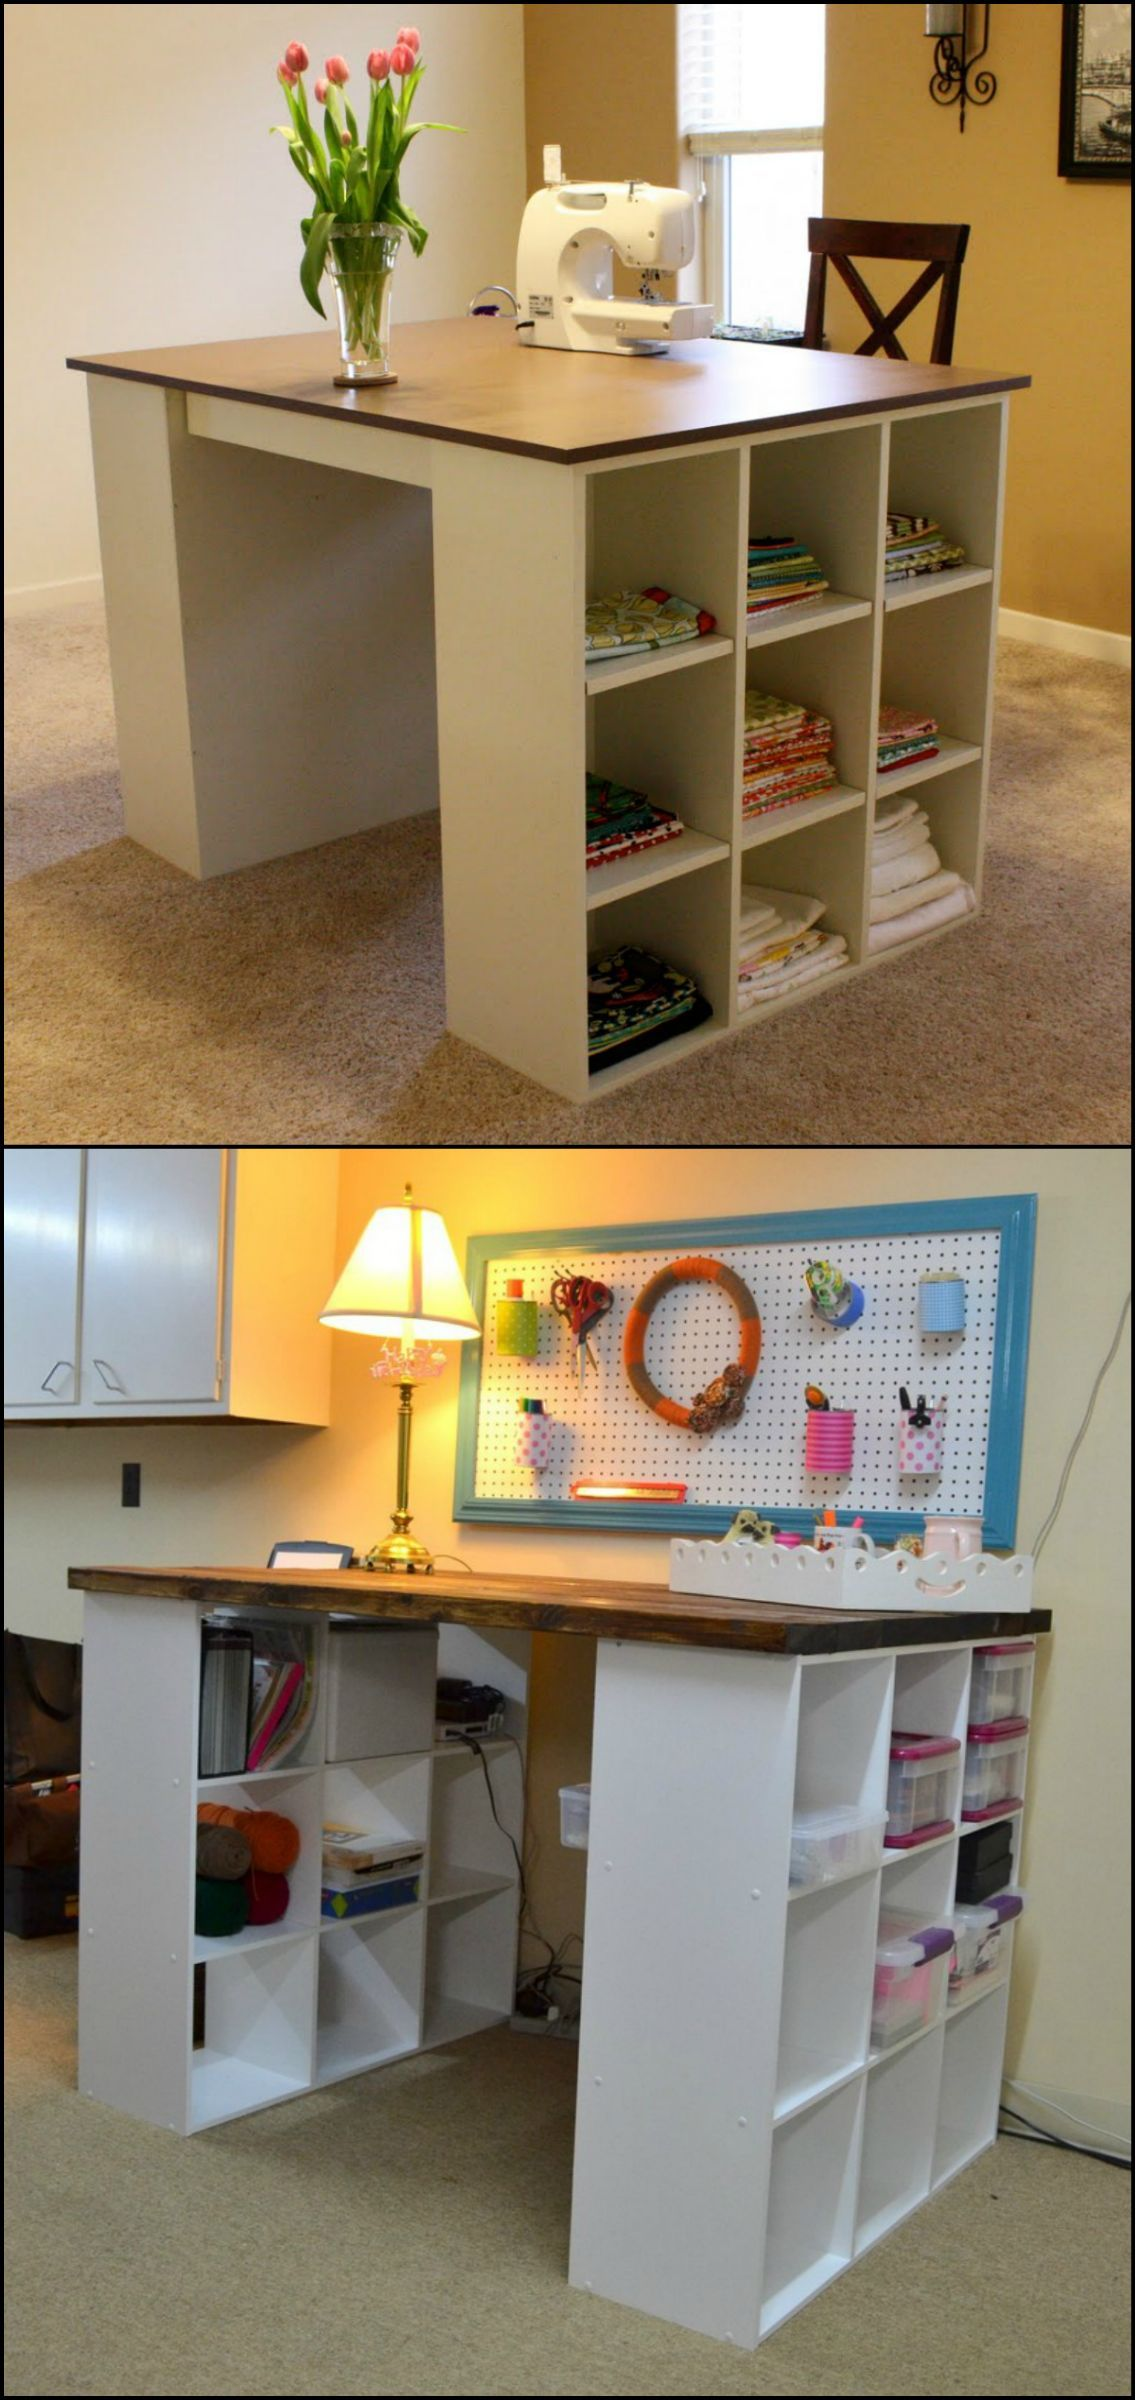 How To Build A Craft Table From Bookshelves Http Theownerbuildernetwork Co Easy Diy Projects Diy Book Bookshelves Diy Craft Tables With Storage Bookcase Diy